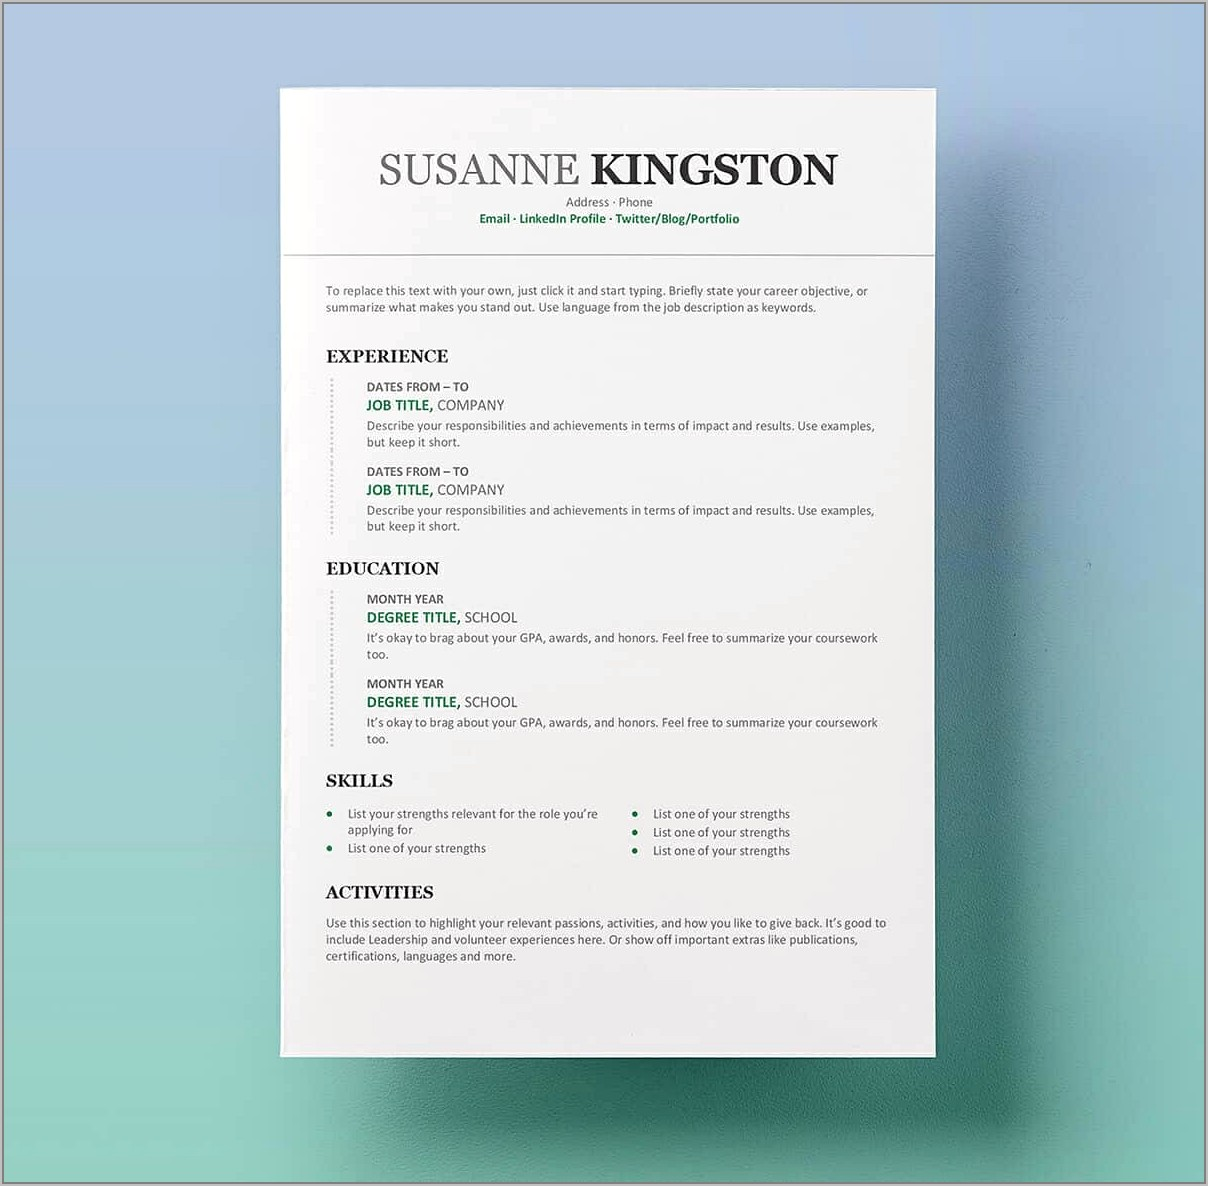 Best Word Templates For Resumes